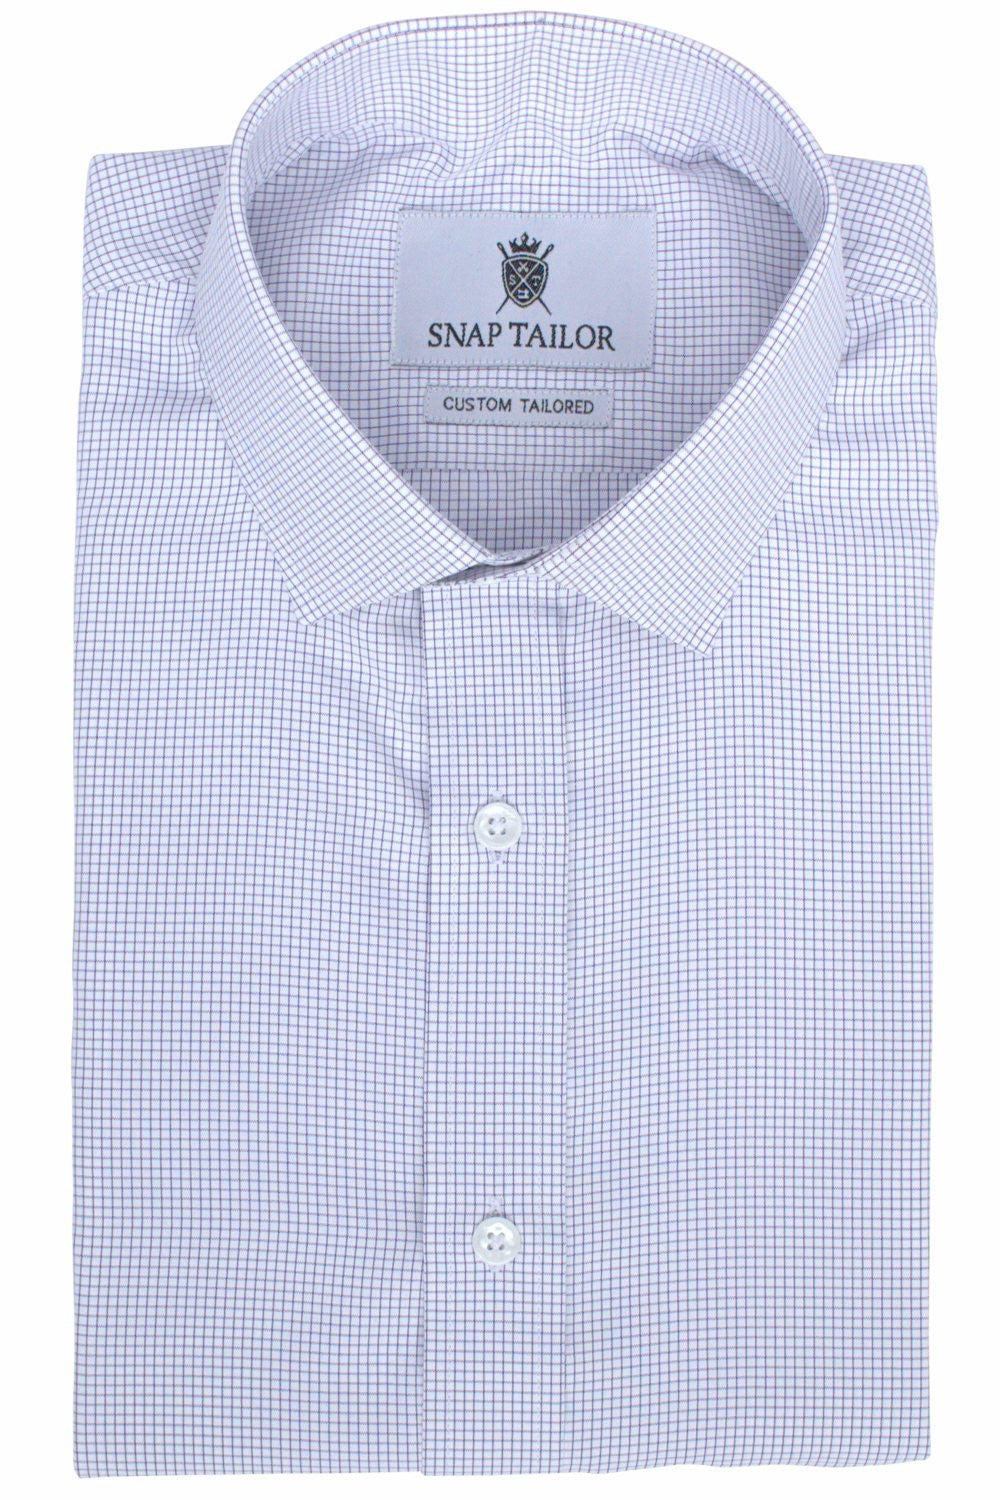 Photo of the Pinpoint Oxford Grid Dress Shirt in Eggplant